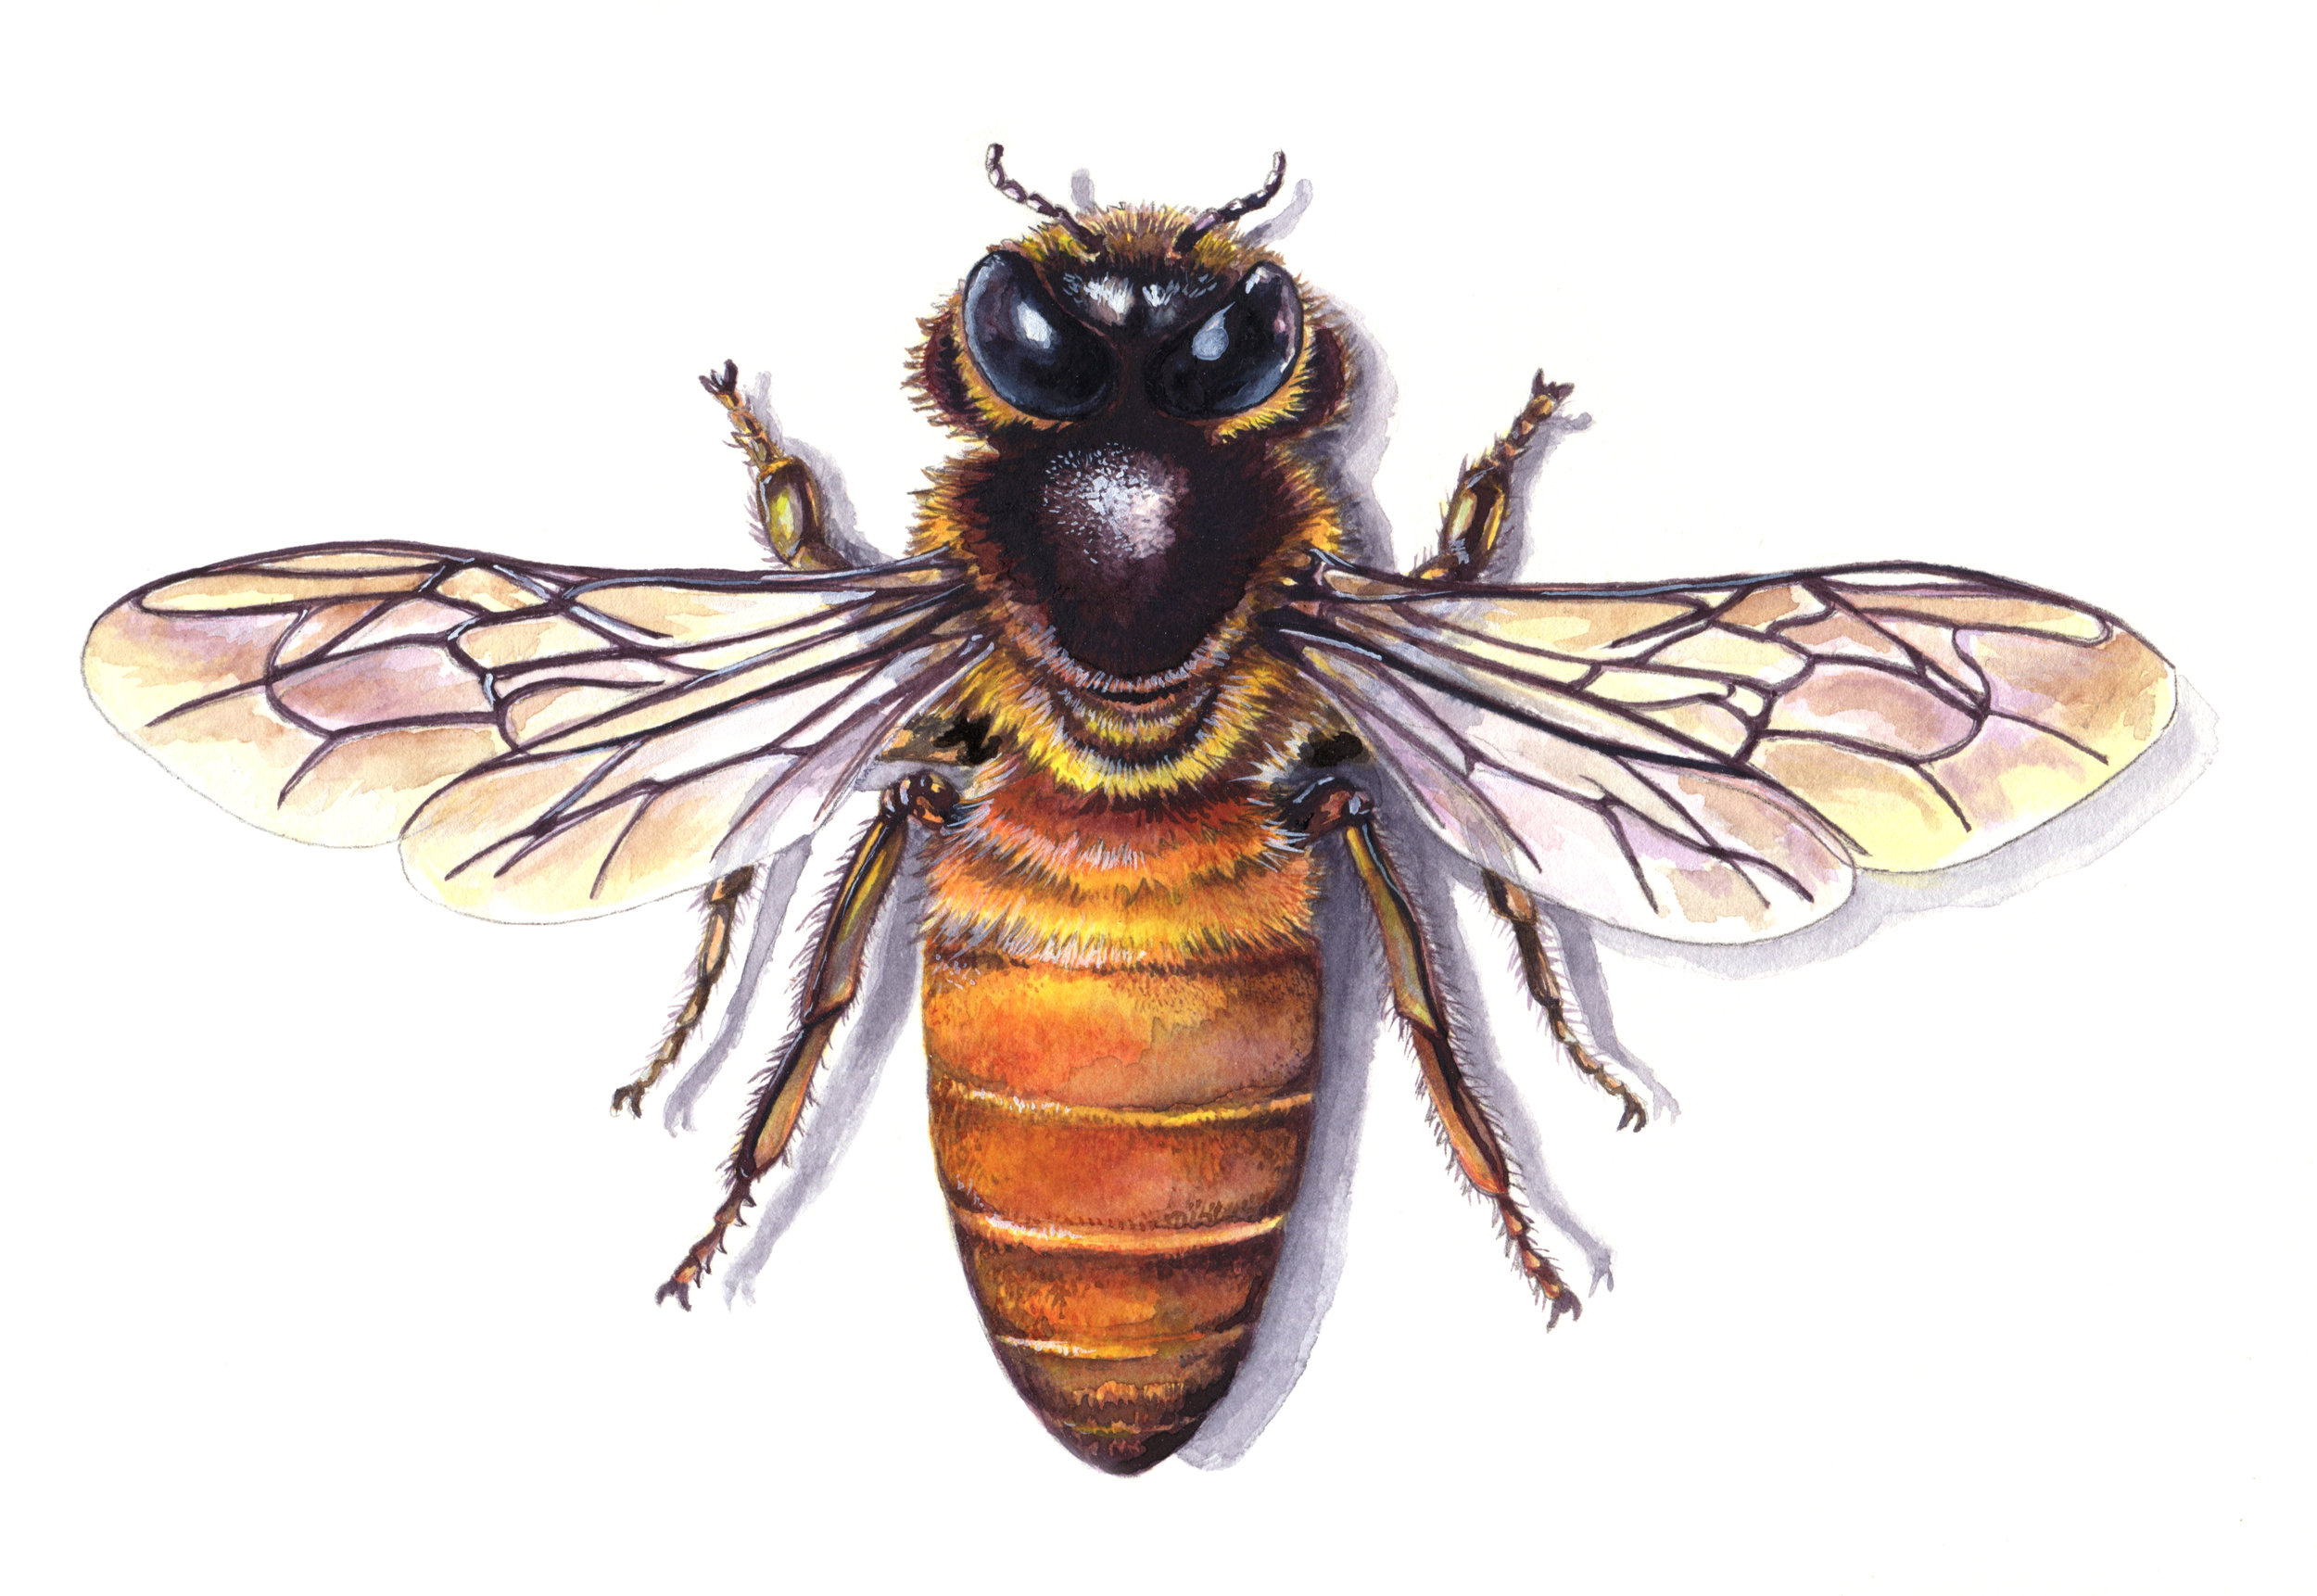 save the bees - buy art that supports the Honeybee Conservancy